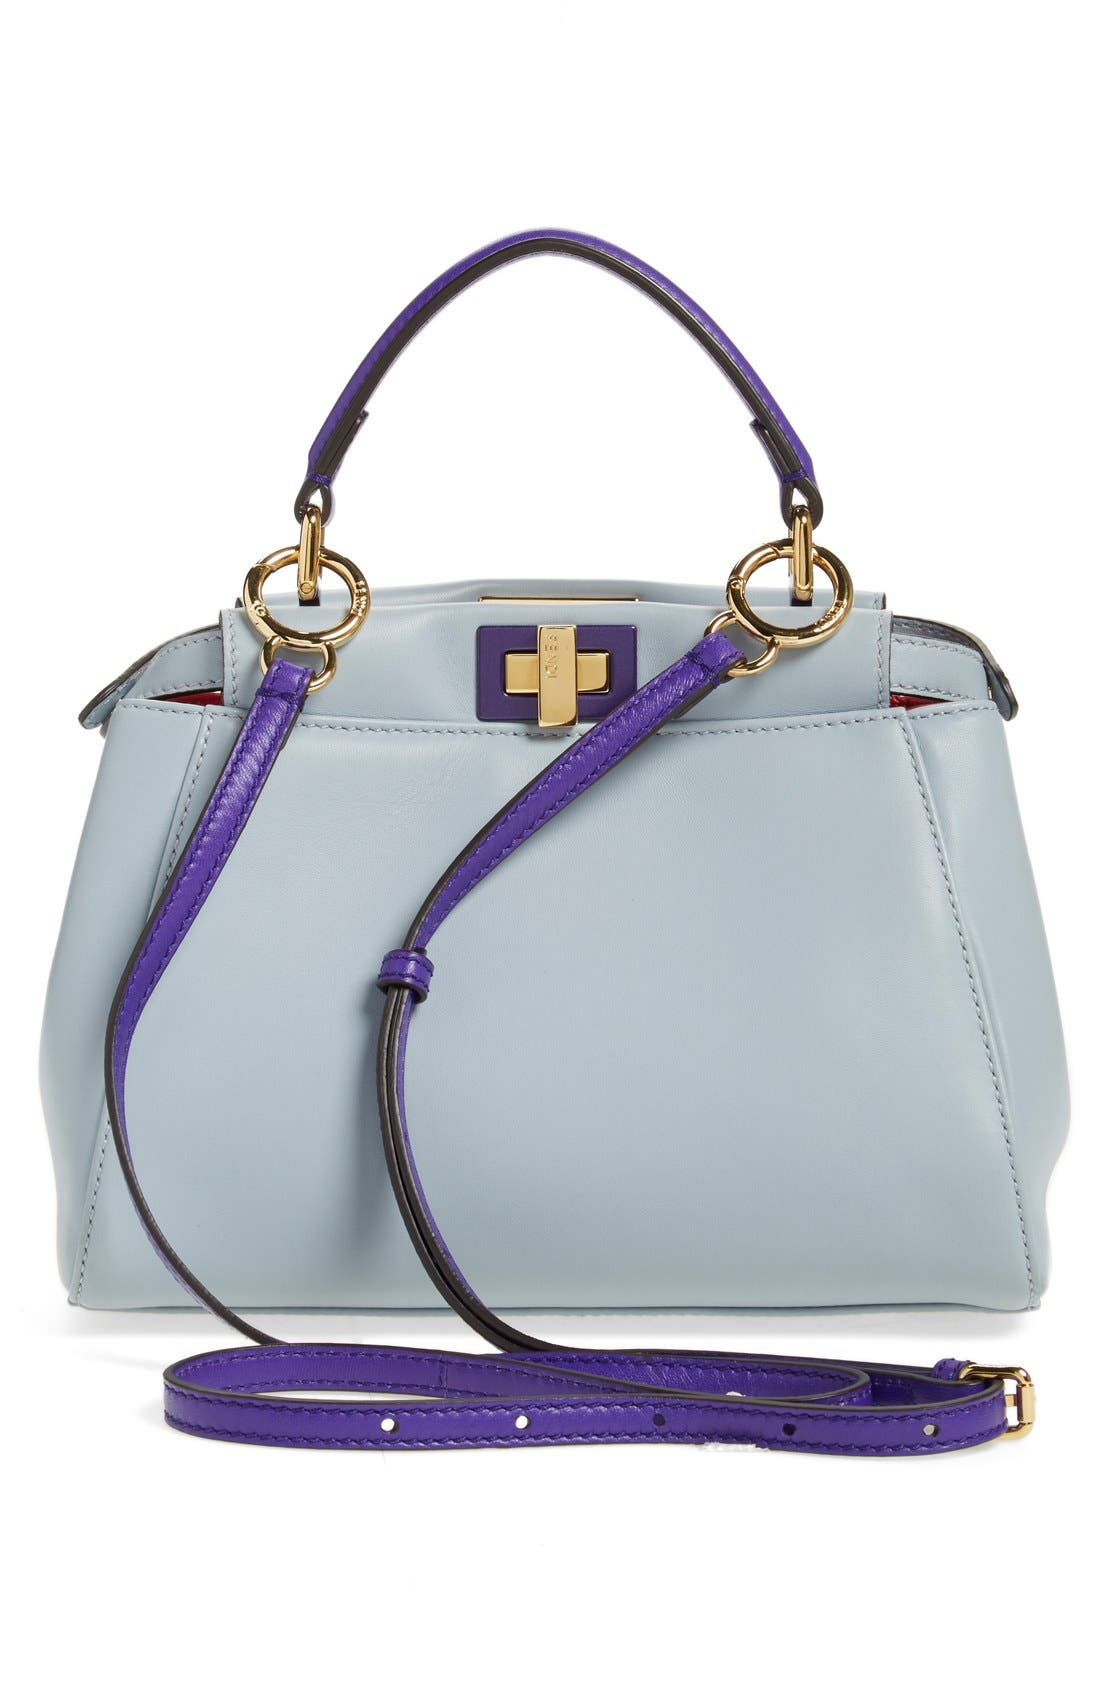 'Mini Peekaboo' Colorblock Leather Bag,                         Main,                         color, Powder/Purple Ruby